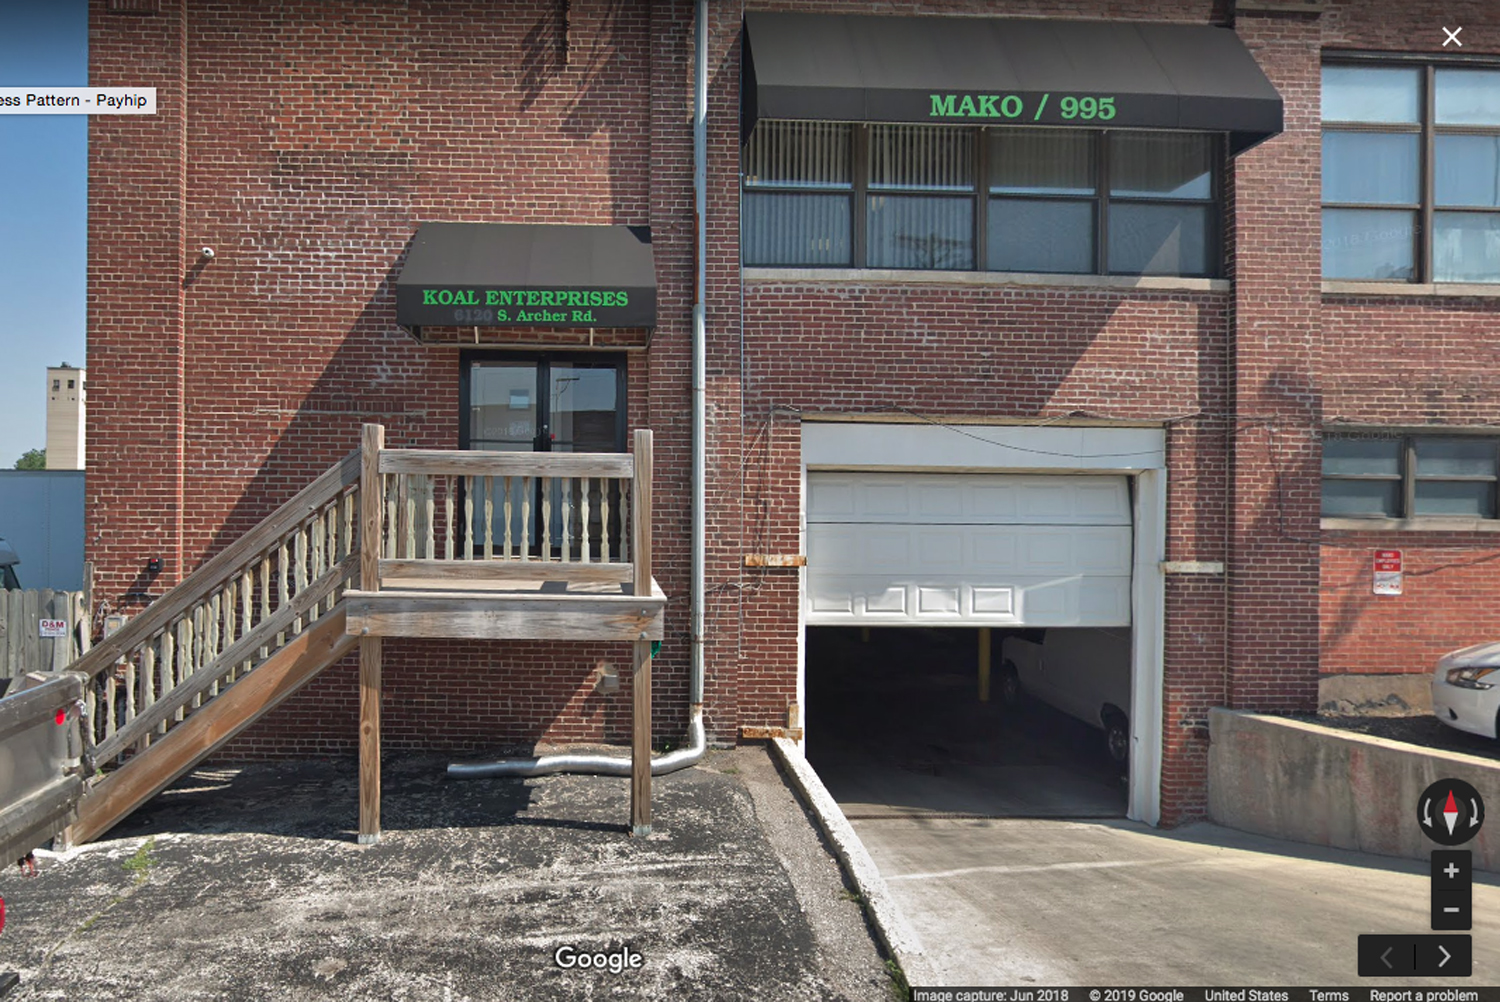 A federal grand jury subpoena seeking records regarding Ald. Carrie Austin also sought records on five businesses owned by the Nitchoff family, including Koal Enterprises and Mako Properties, which share this building in Summit.